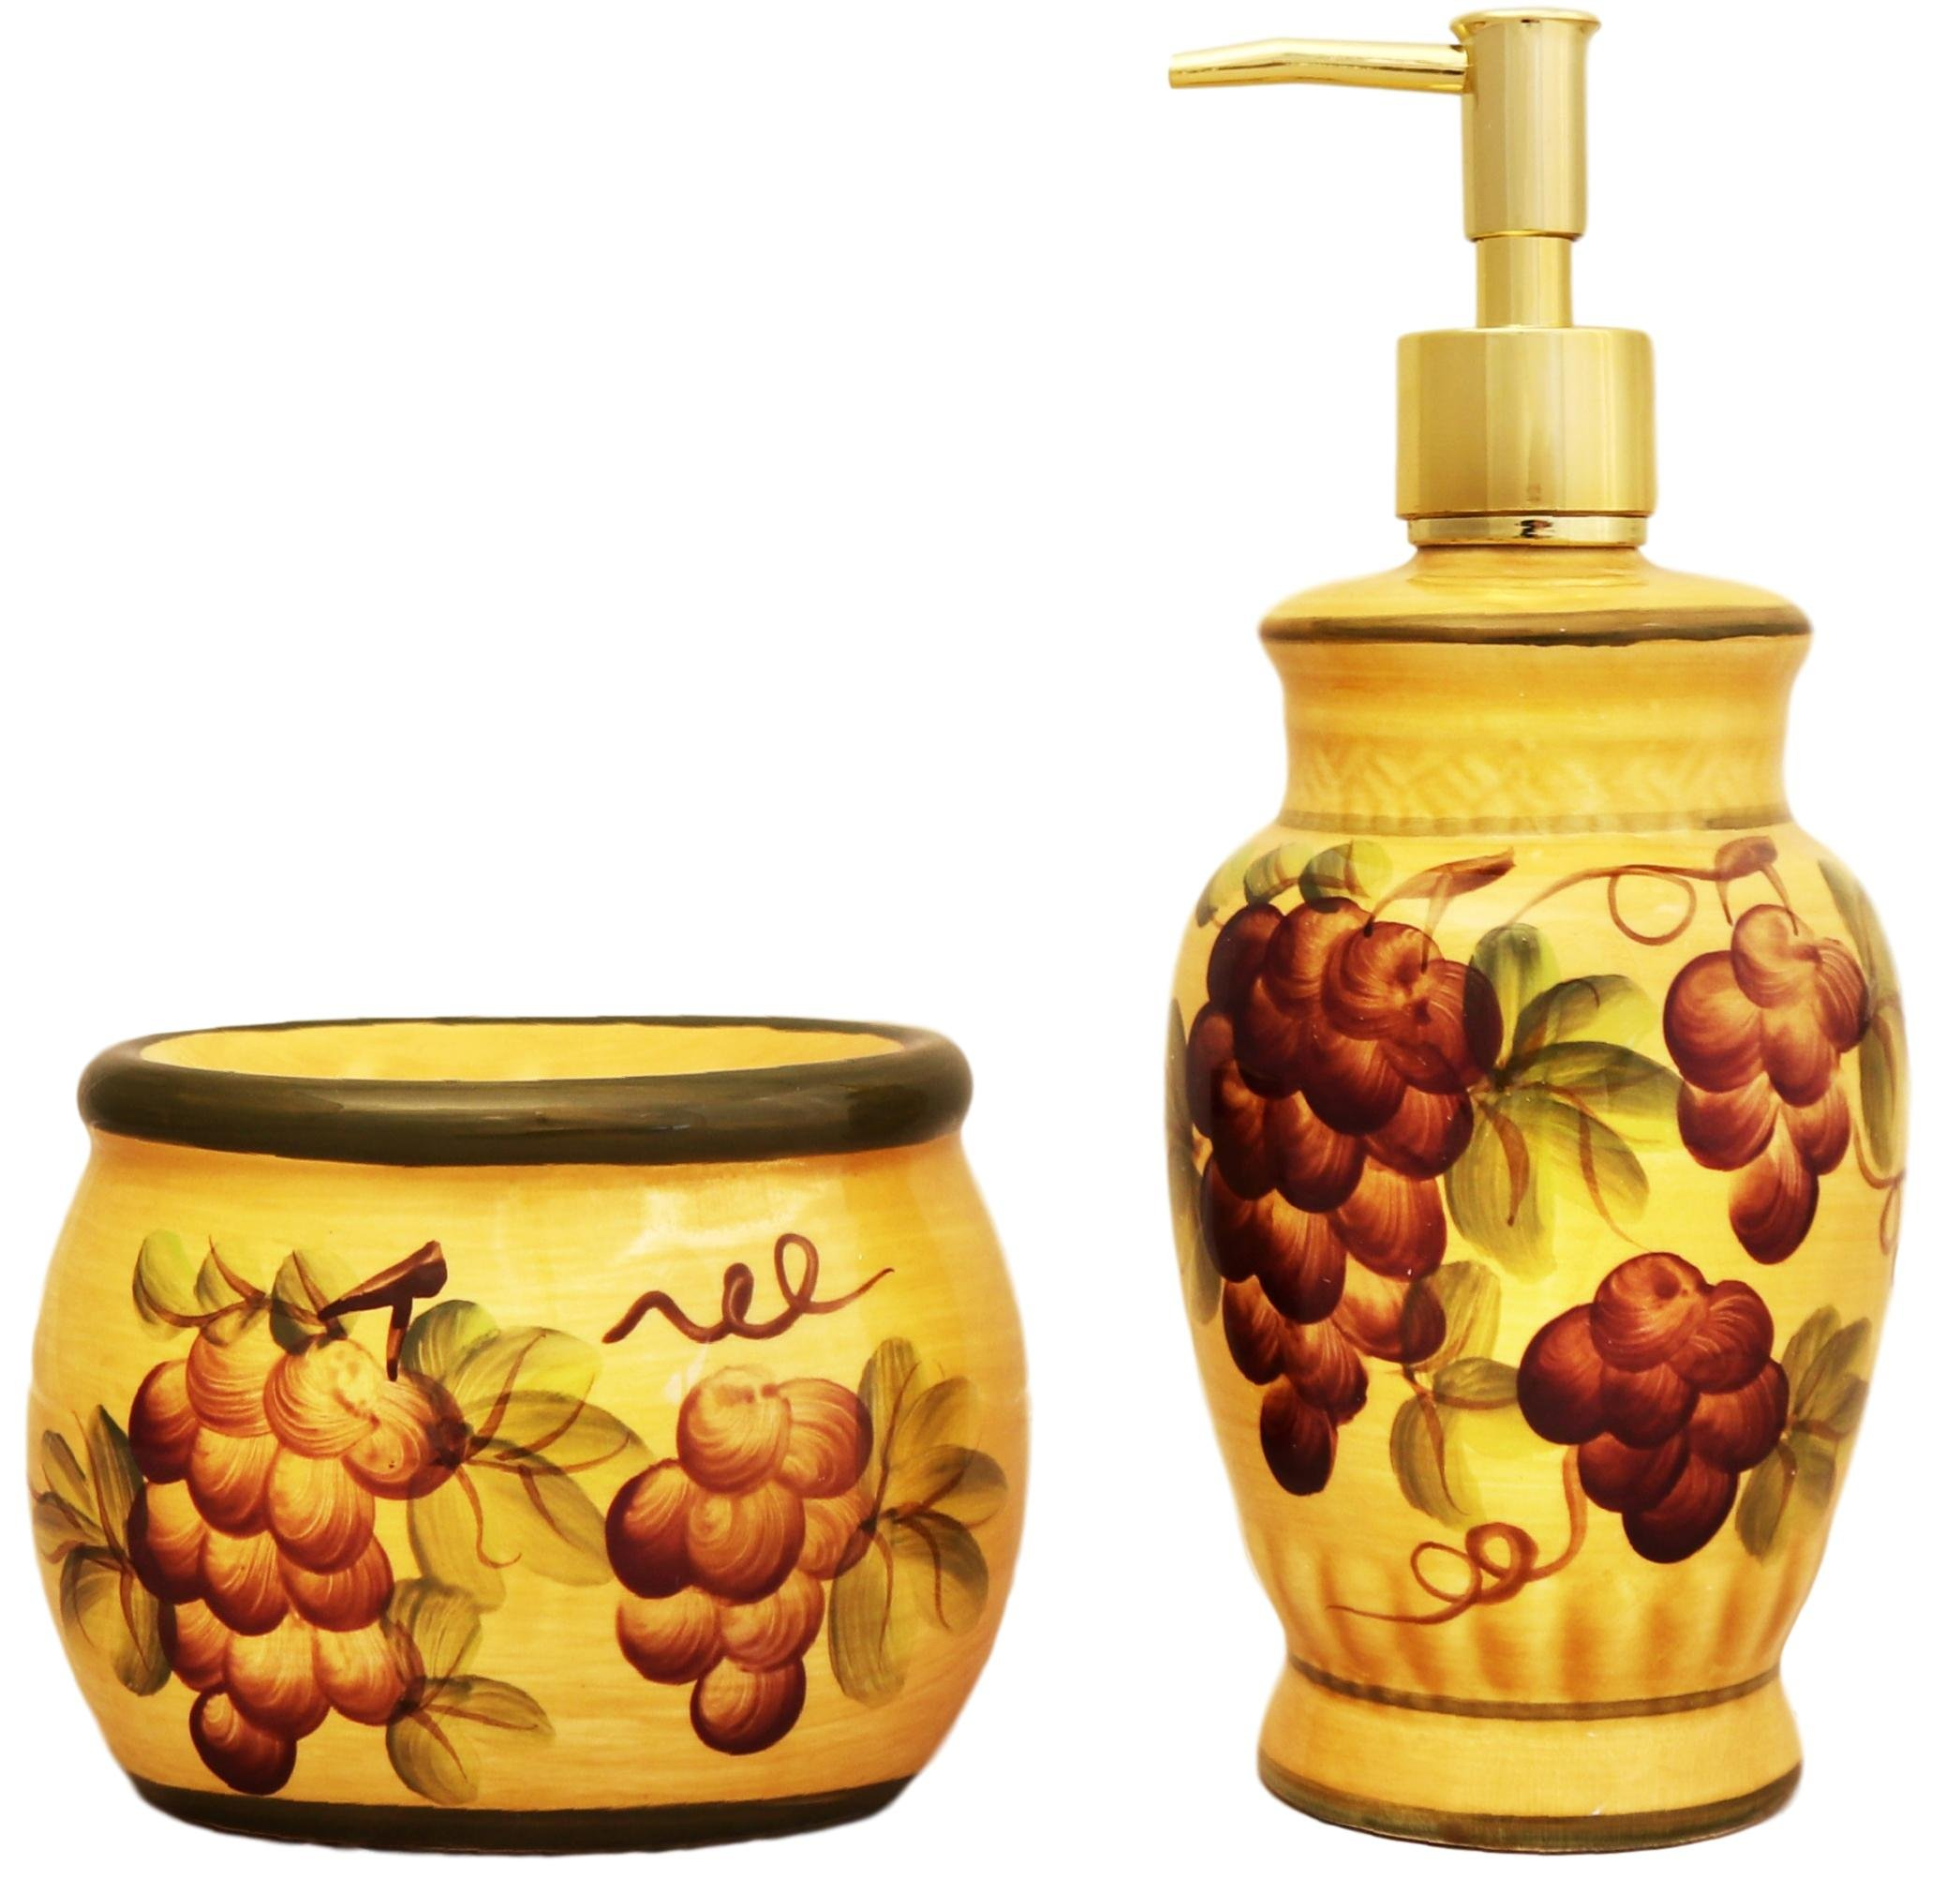 Tuscany Grape Hand Painted Ceramic Collection by ACK (Soap Dispenser and Sponge Holder Set)